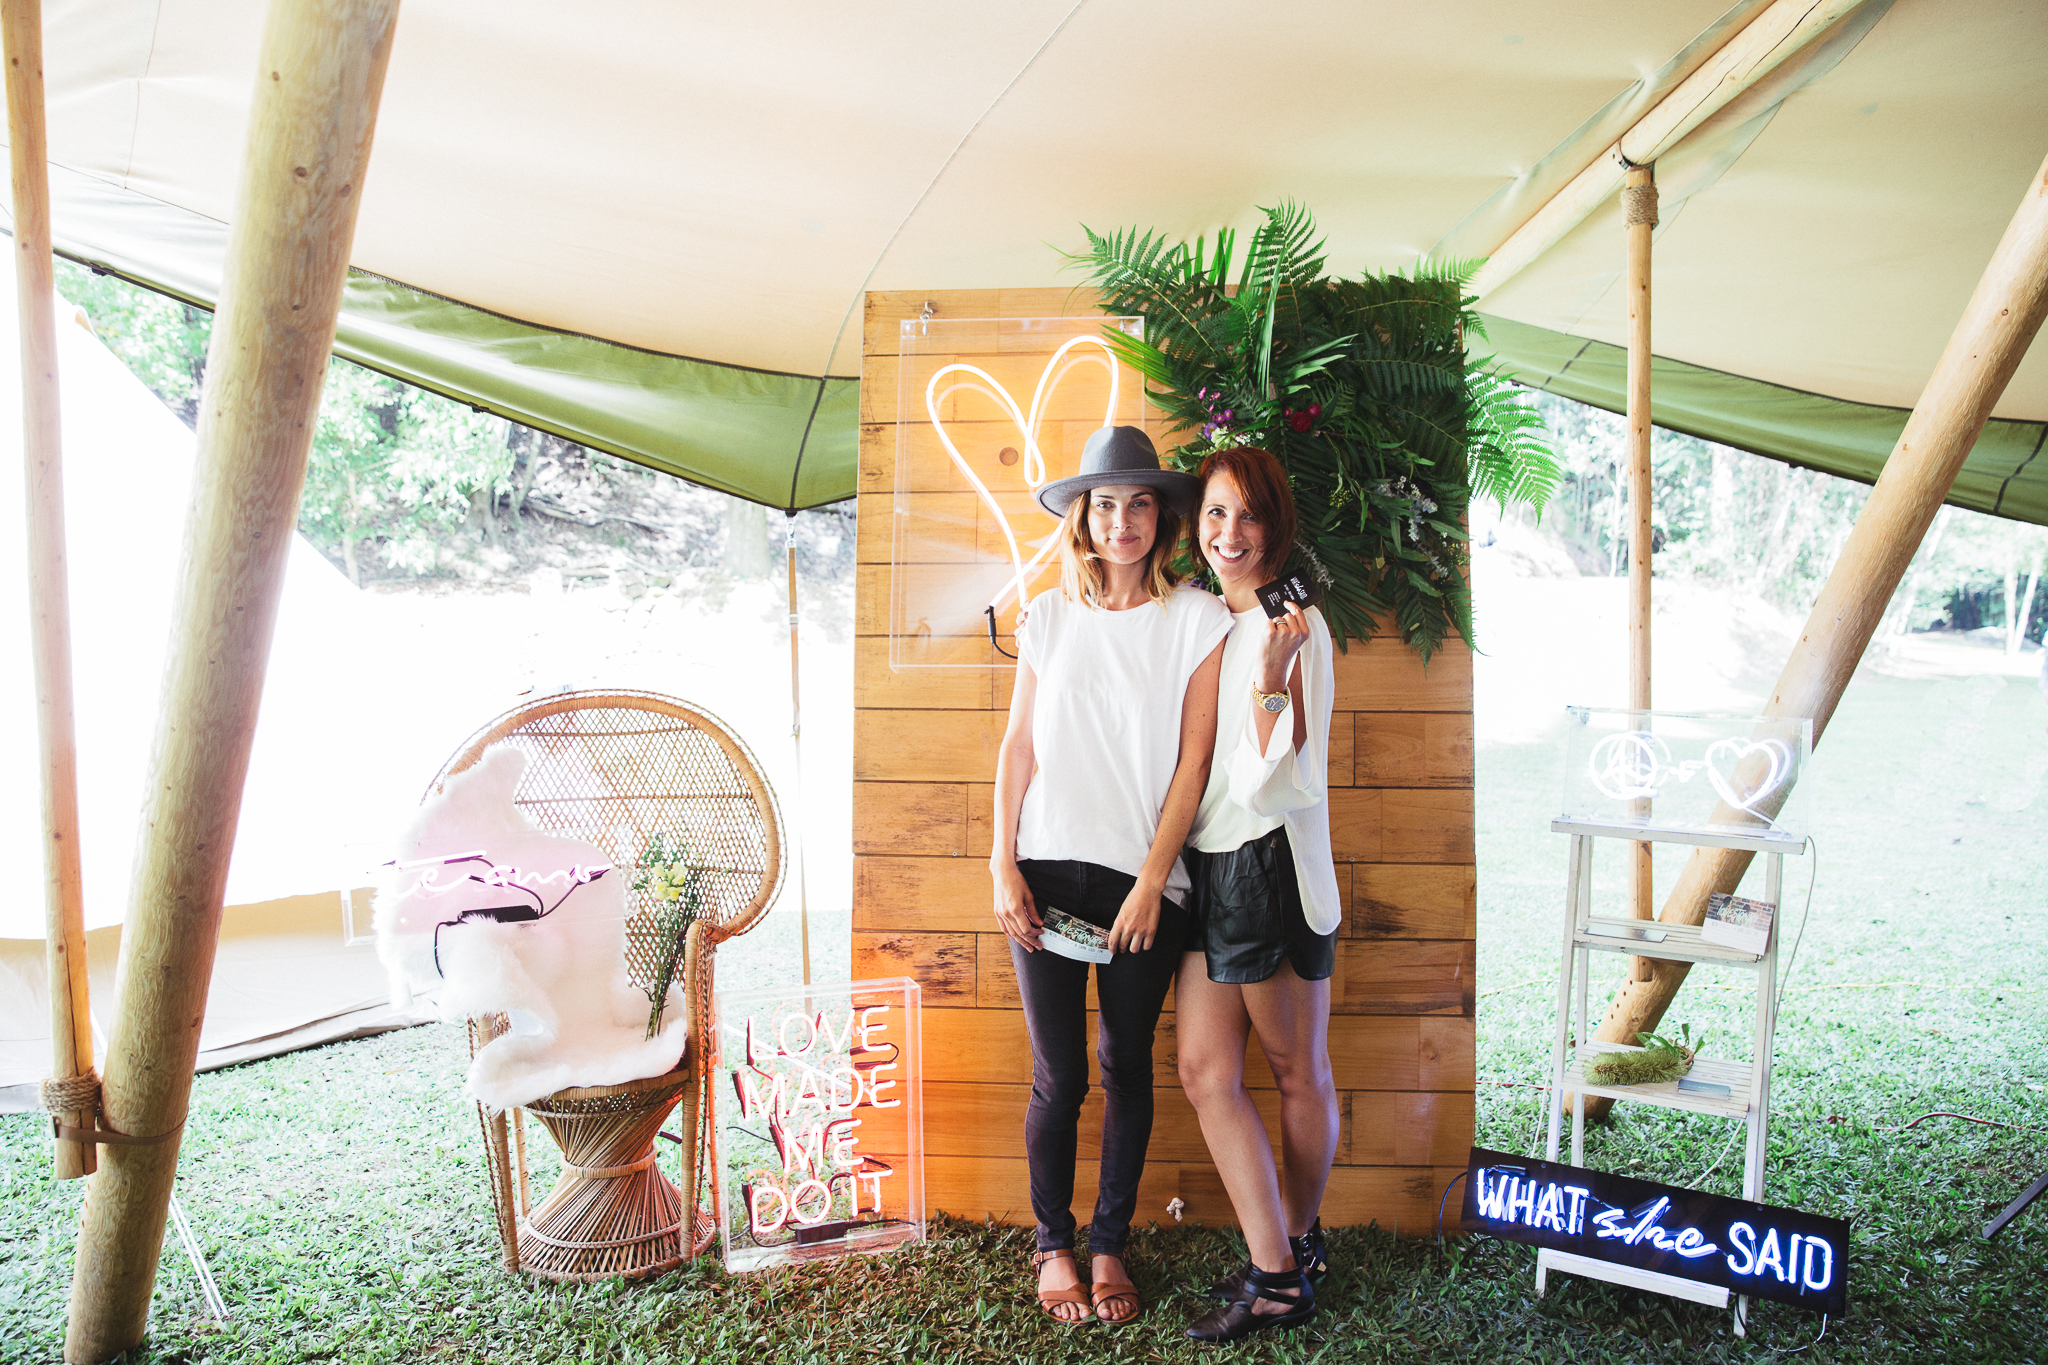 Gold coast tipis, wedding, marquee hire, gold coast, what she said, neon signs, wedfest